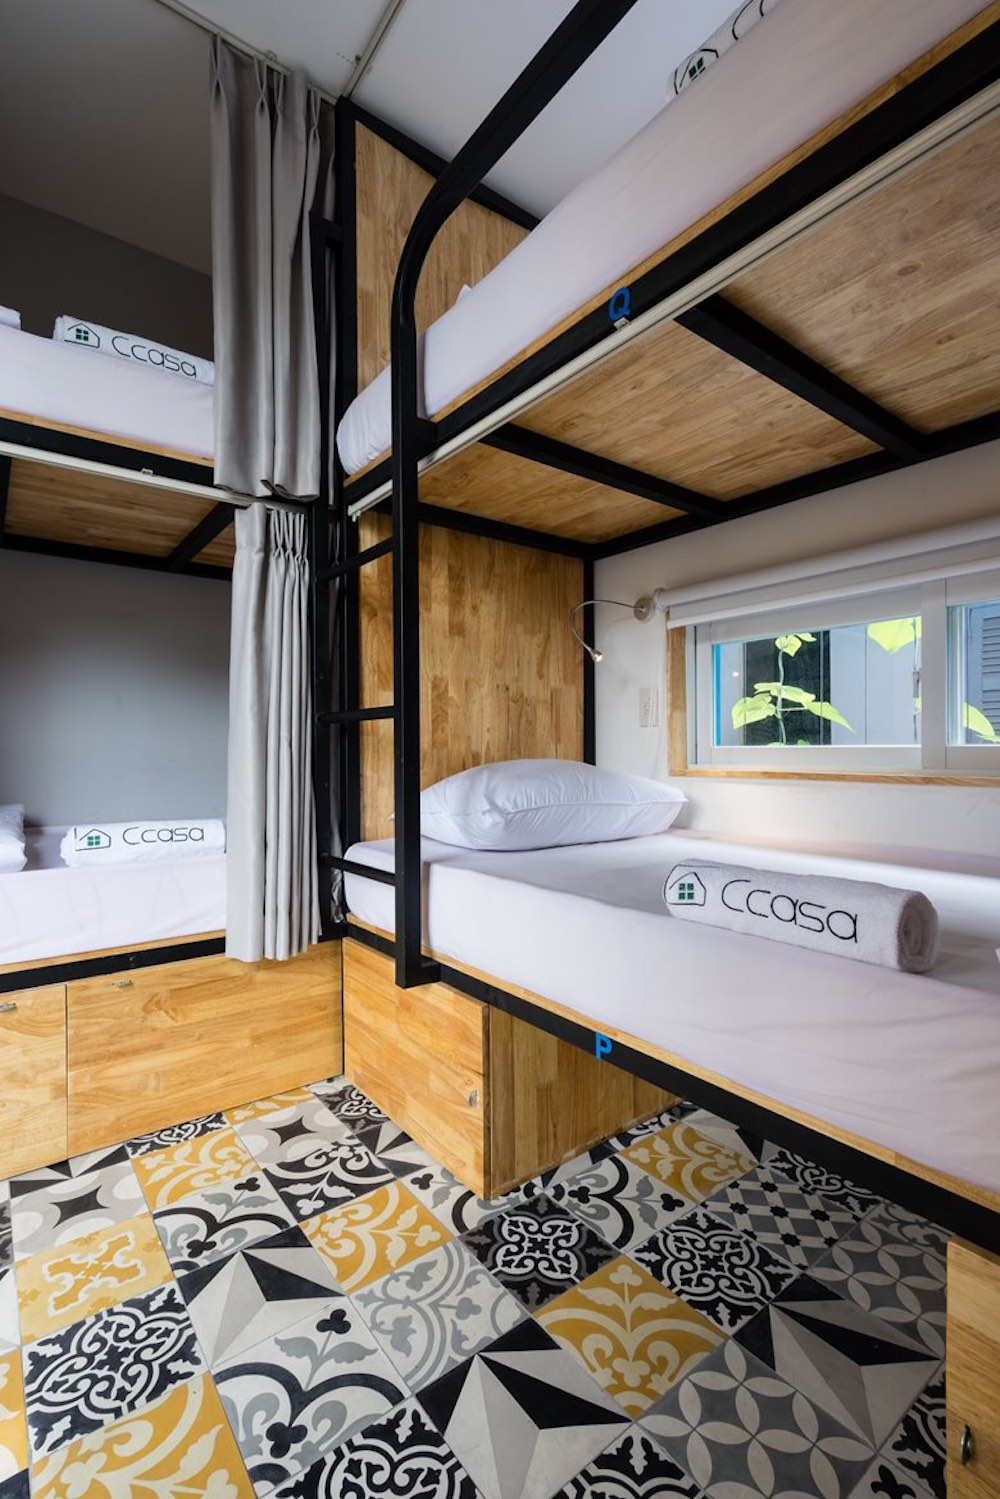 Each individual sleeping area has curtains for privacy and the idea of the bunk beds is to bring people together